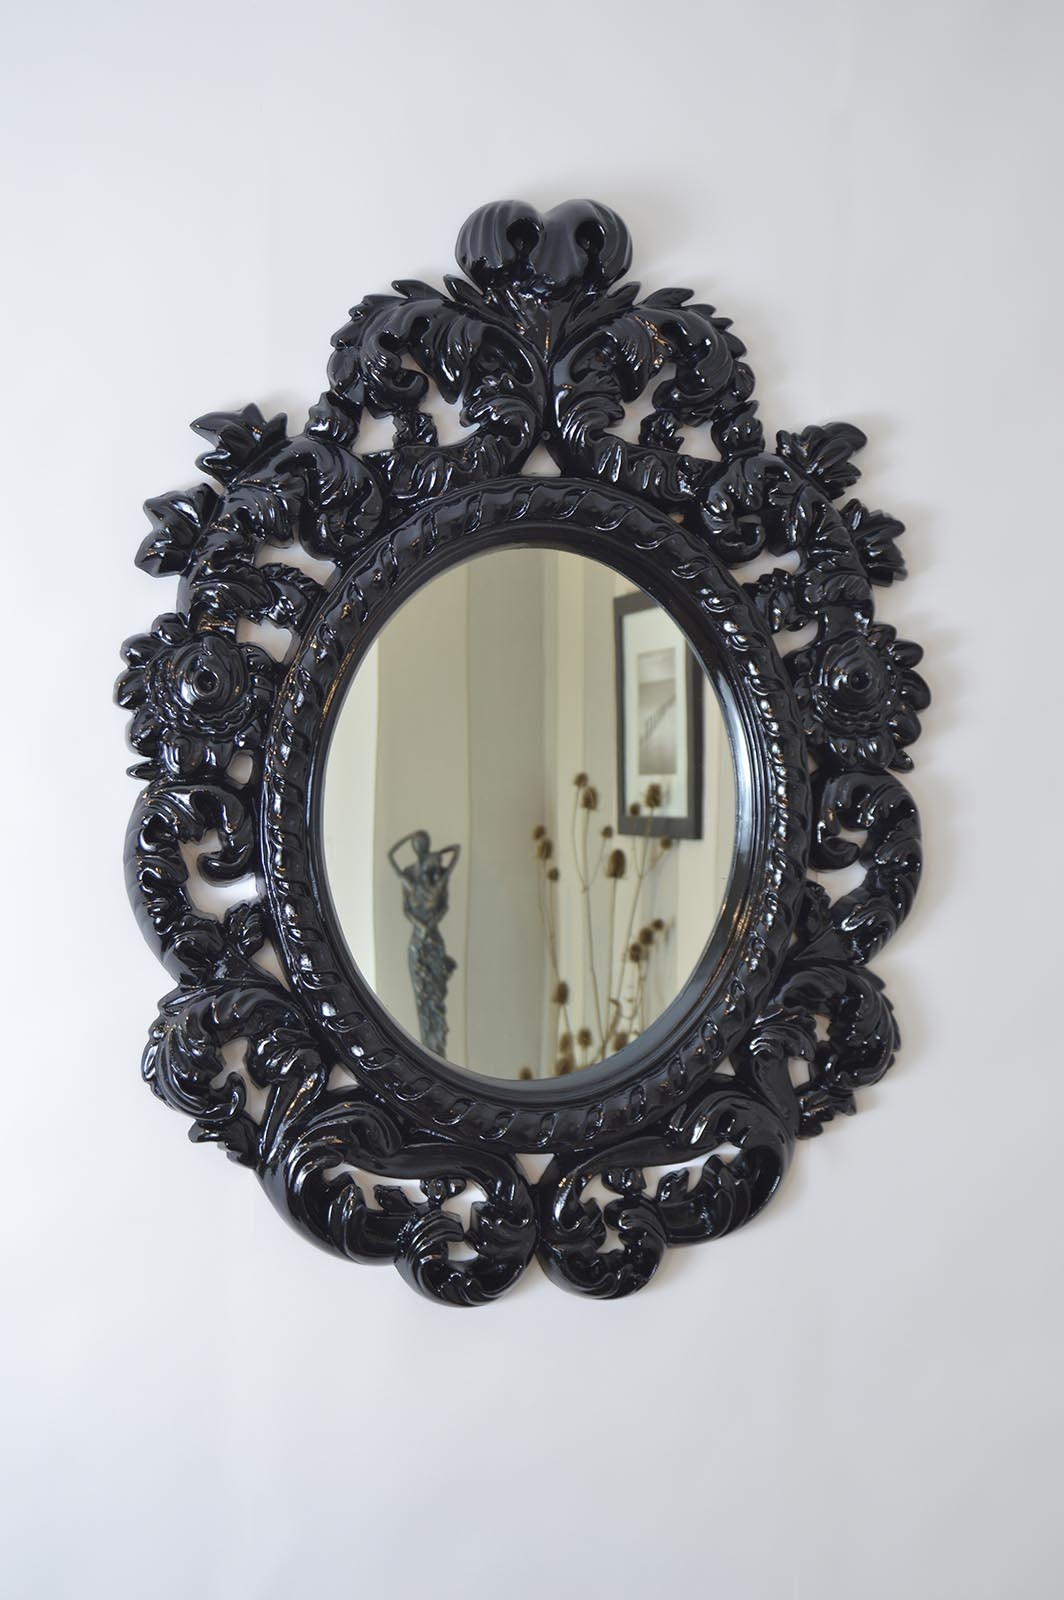 Large Decorative Gloss Black Antique Style Wall Mirror 3ft3 X 2ft5 Pertaining To Black Oval Wall Mirror (Image 5 of 15)